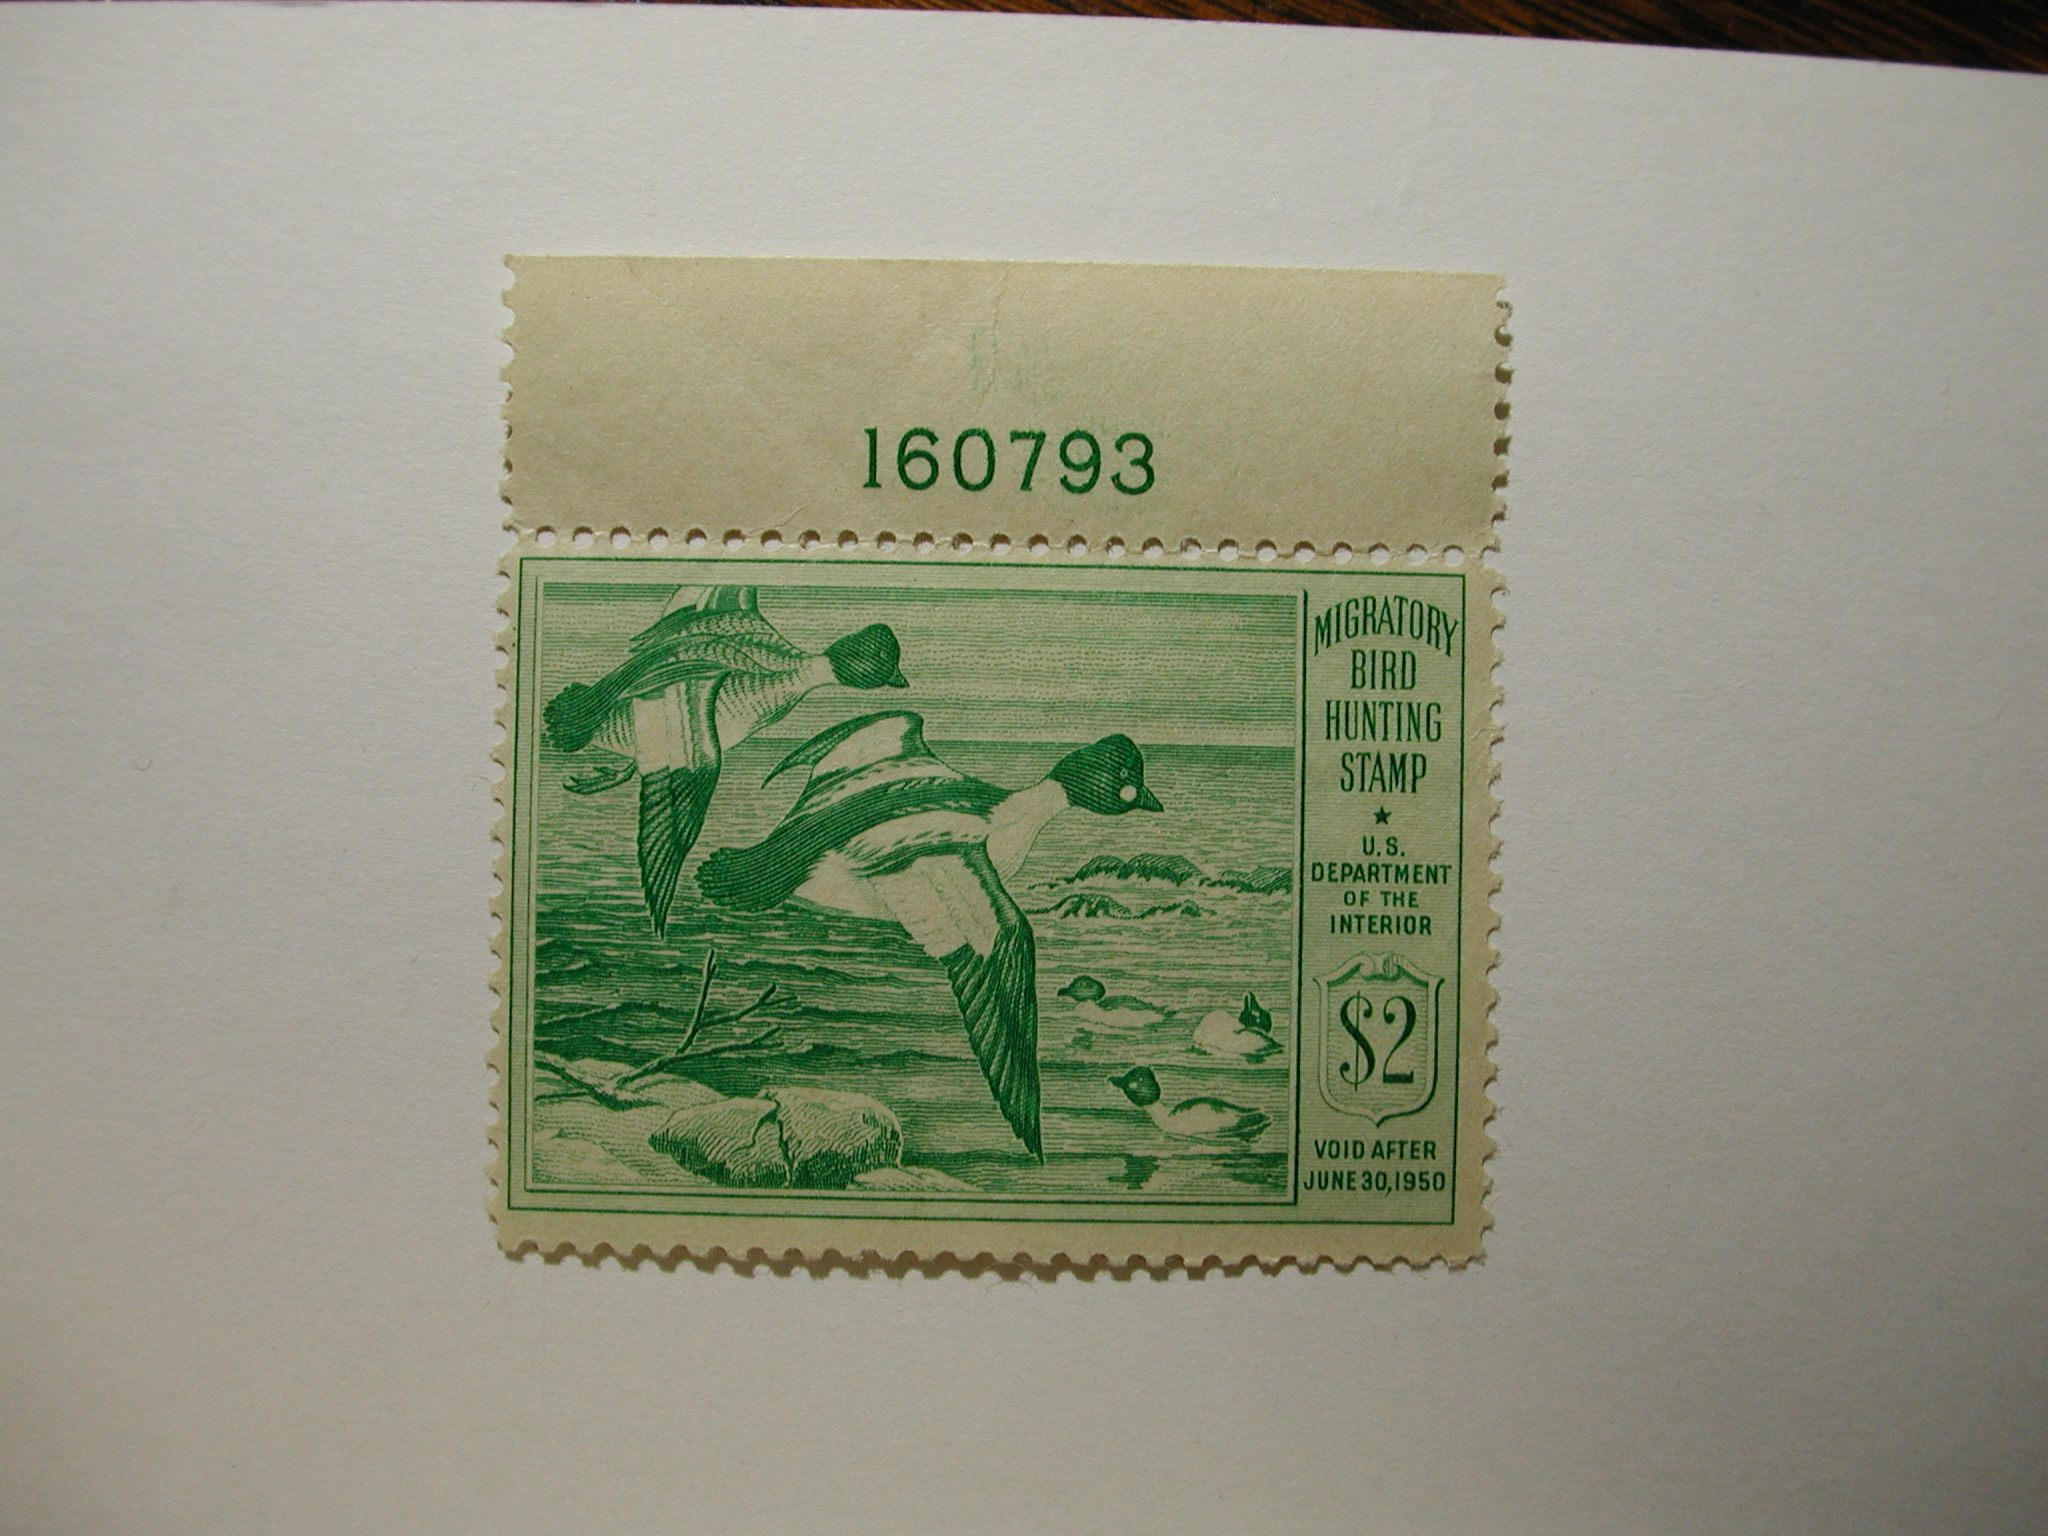 US Department of Interior Scott #RW16 $2 Goldeneye Ducks 1949, MNH/ Gum Skips on Plate # - Plate Single #160793